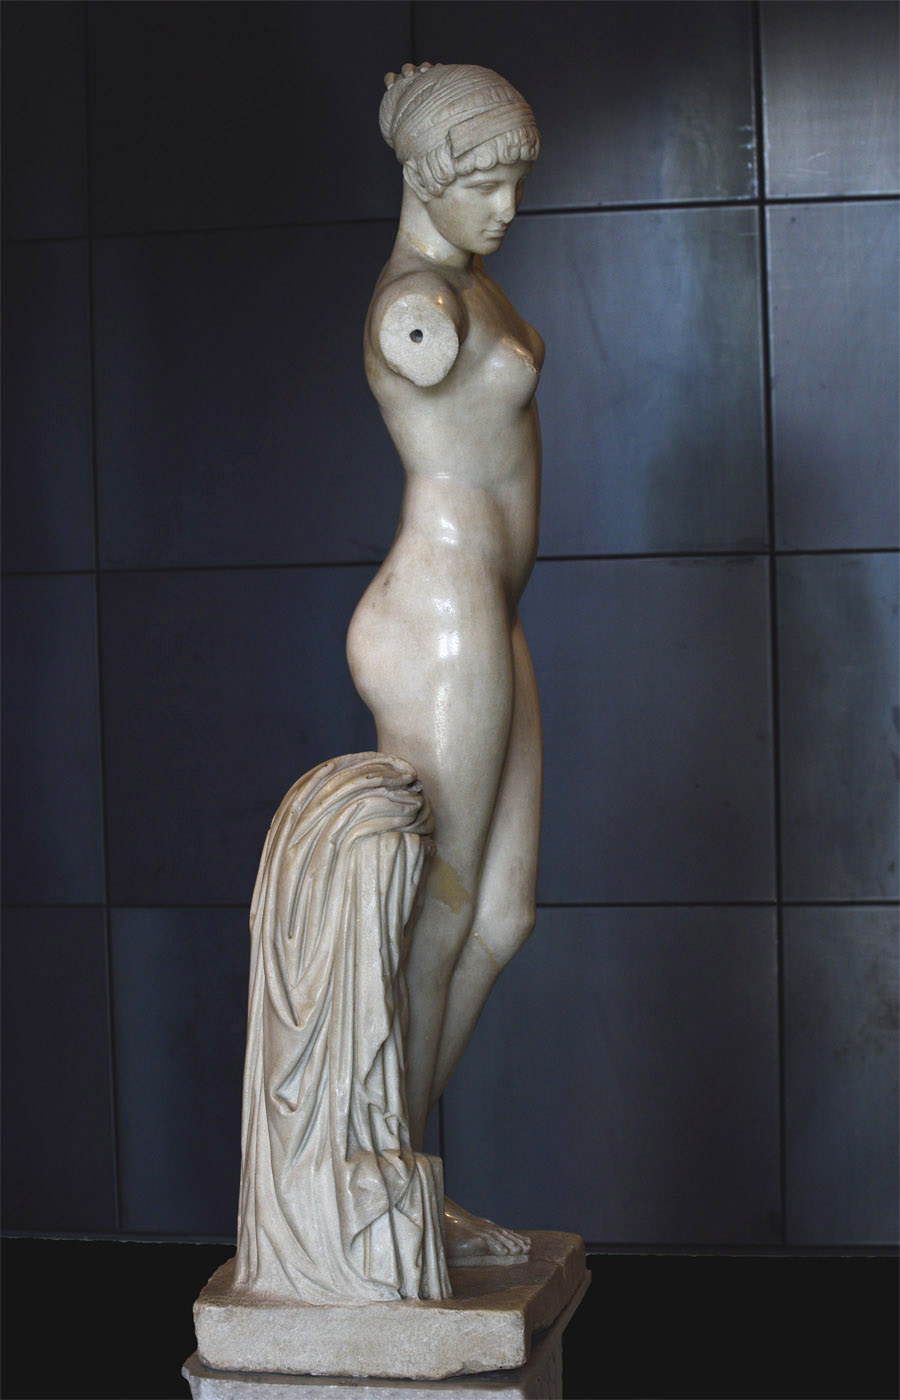 Esquiline Venus. Parian marble. Work of the early Roman Imperial age. Inv. No. 1141. Rome, Capitoline Museums, Palazzo dei Conservatori, Halls of the Horti Lamiani